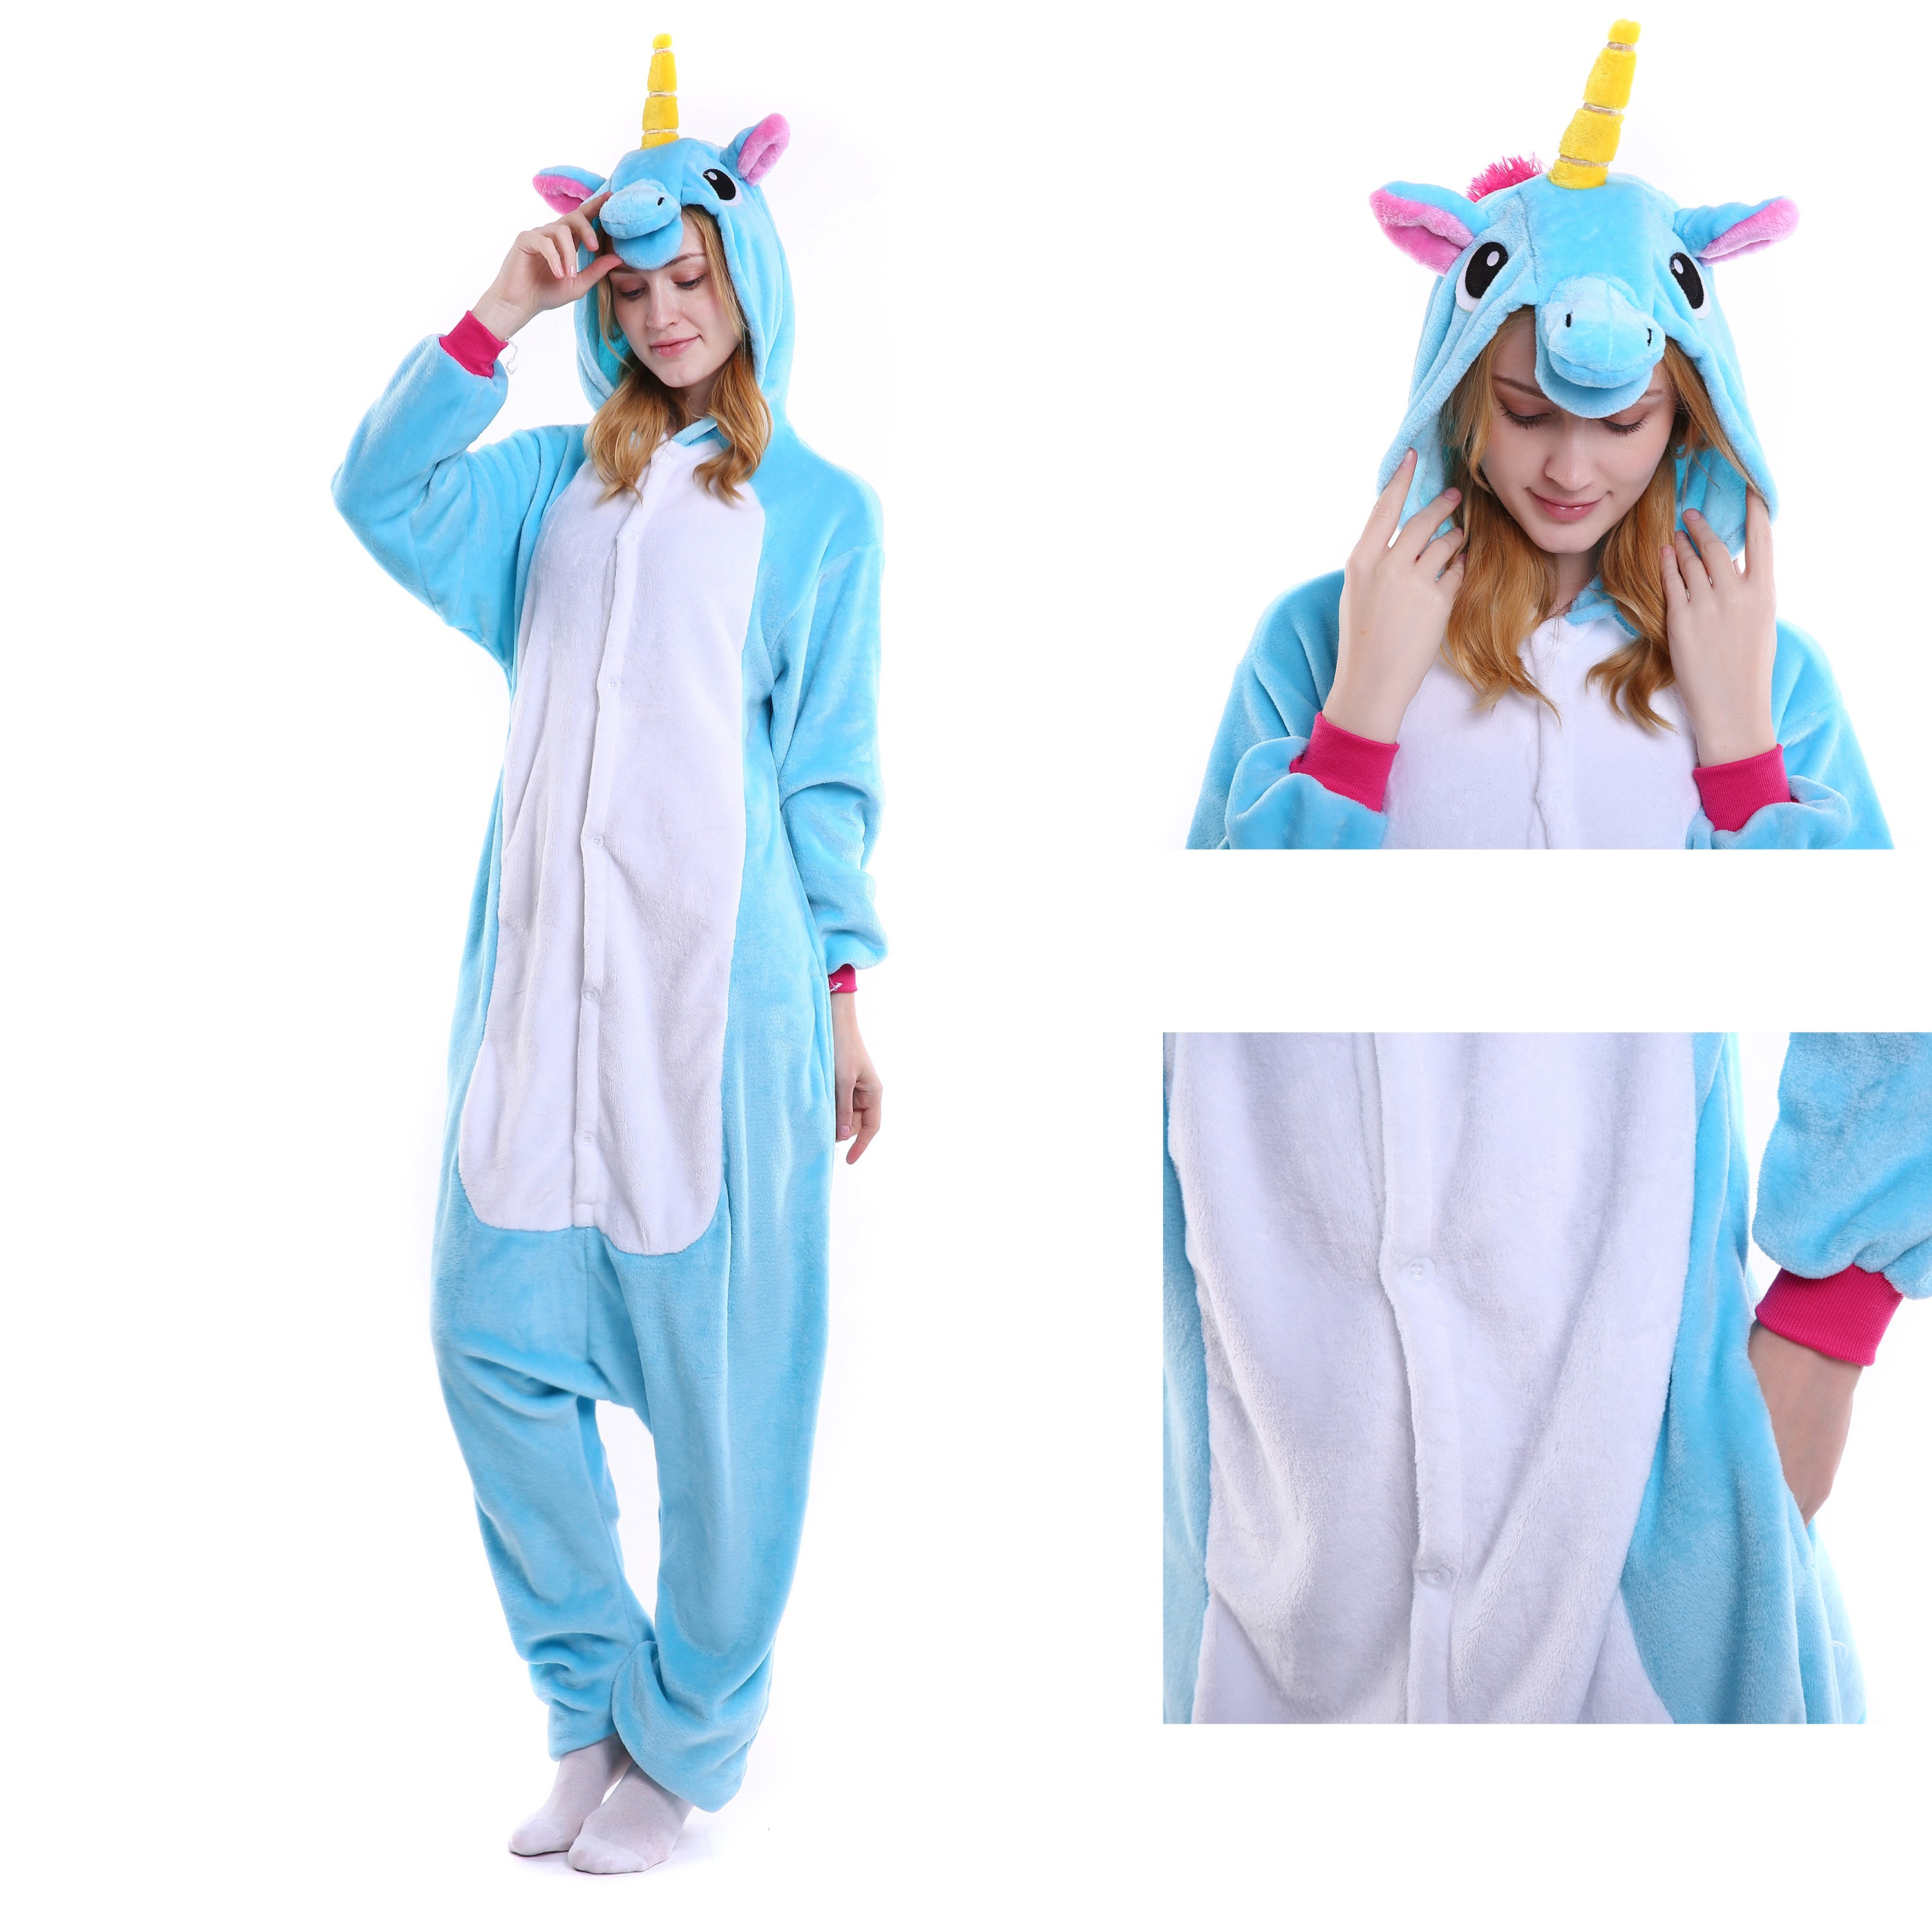 feb8200a4b1b Blue Unicorn Onesie for Adult Kigurumi Pajama Halloween Costumes